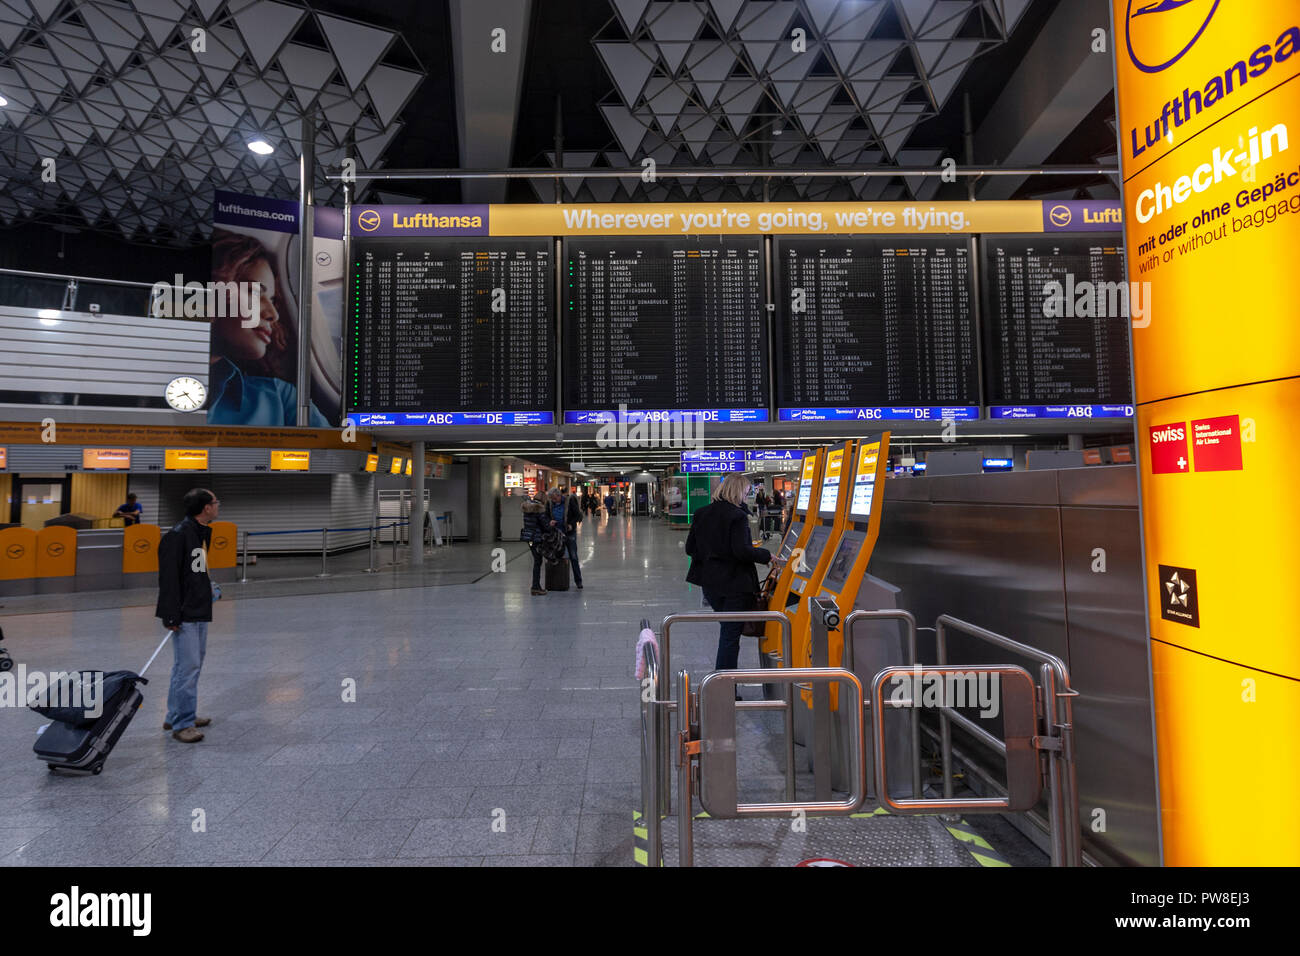 Automatic Lufthansa check in facilities in Frankfurt Airport in Frankfurt, Germany. - Stock Image